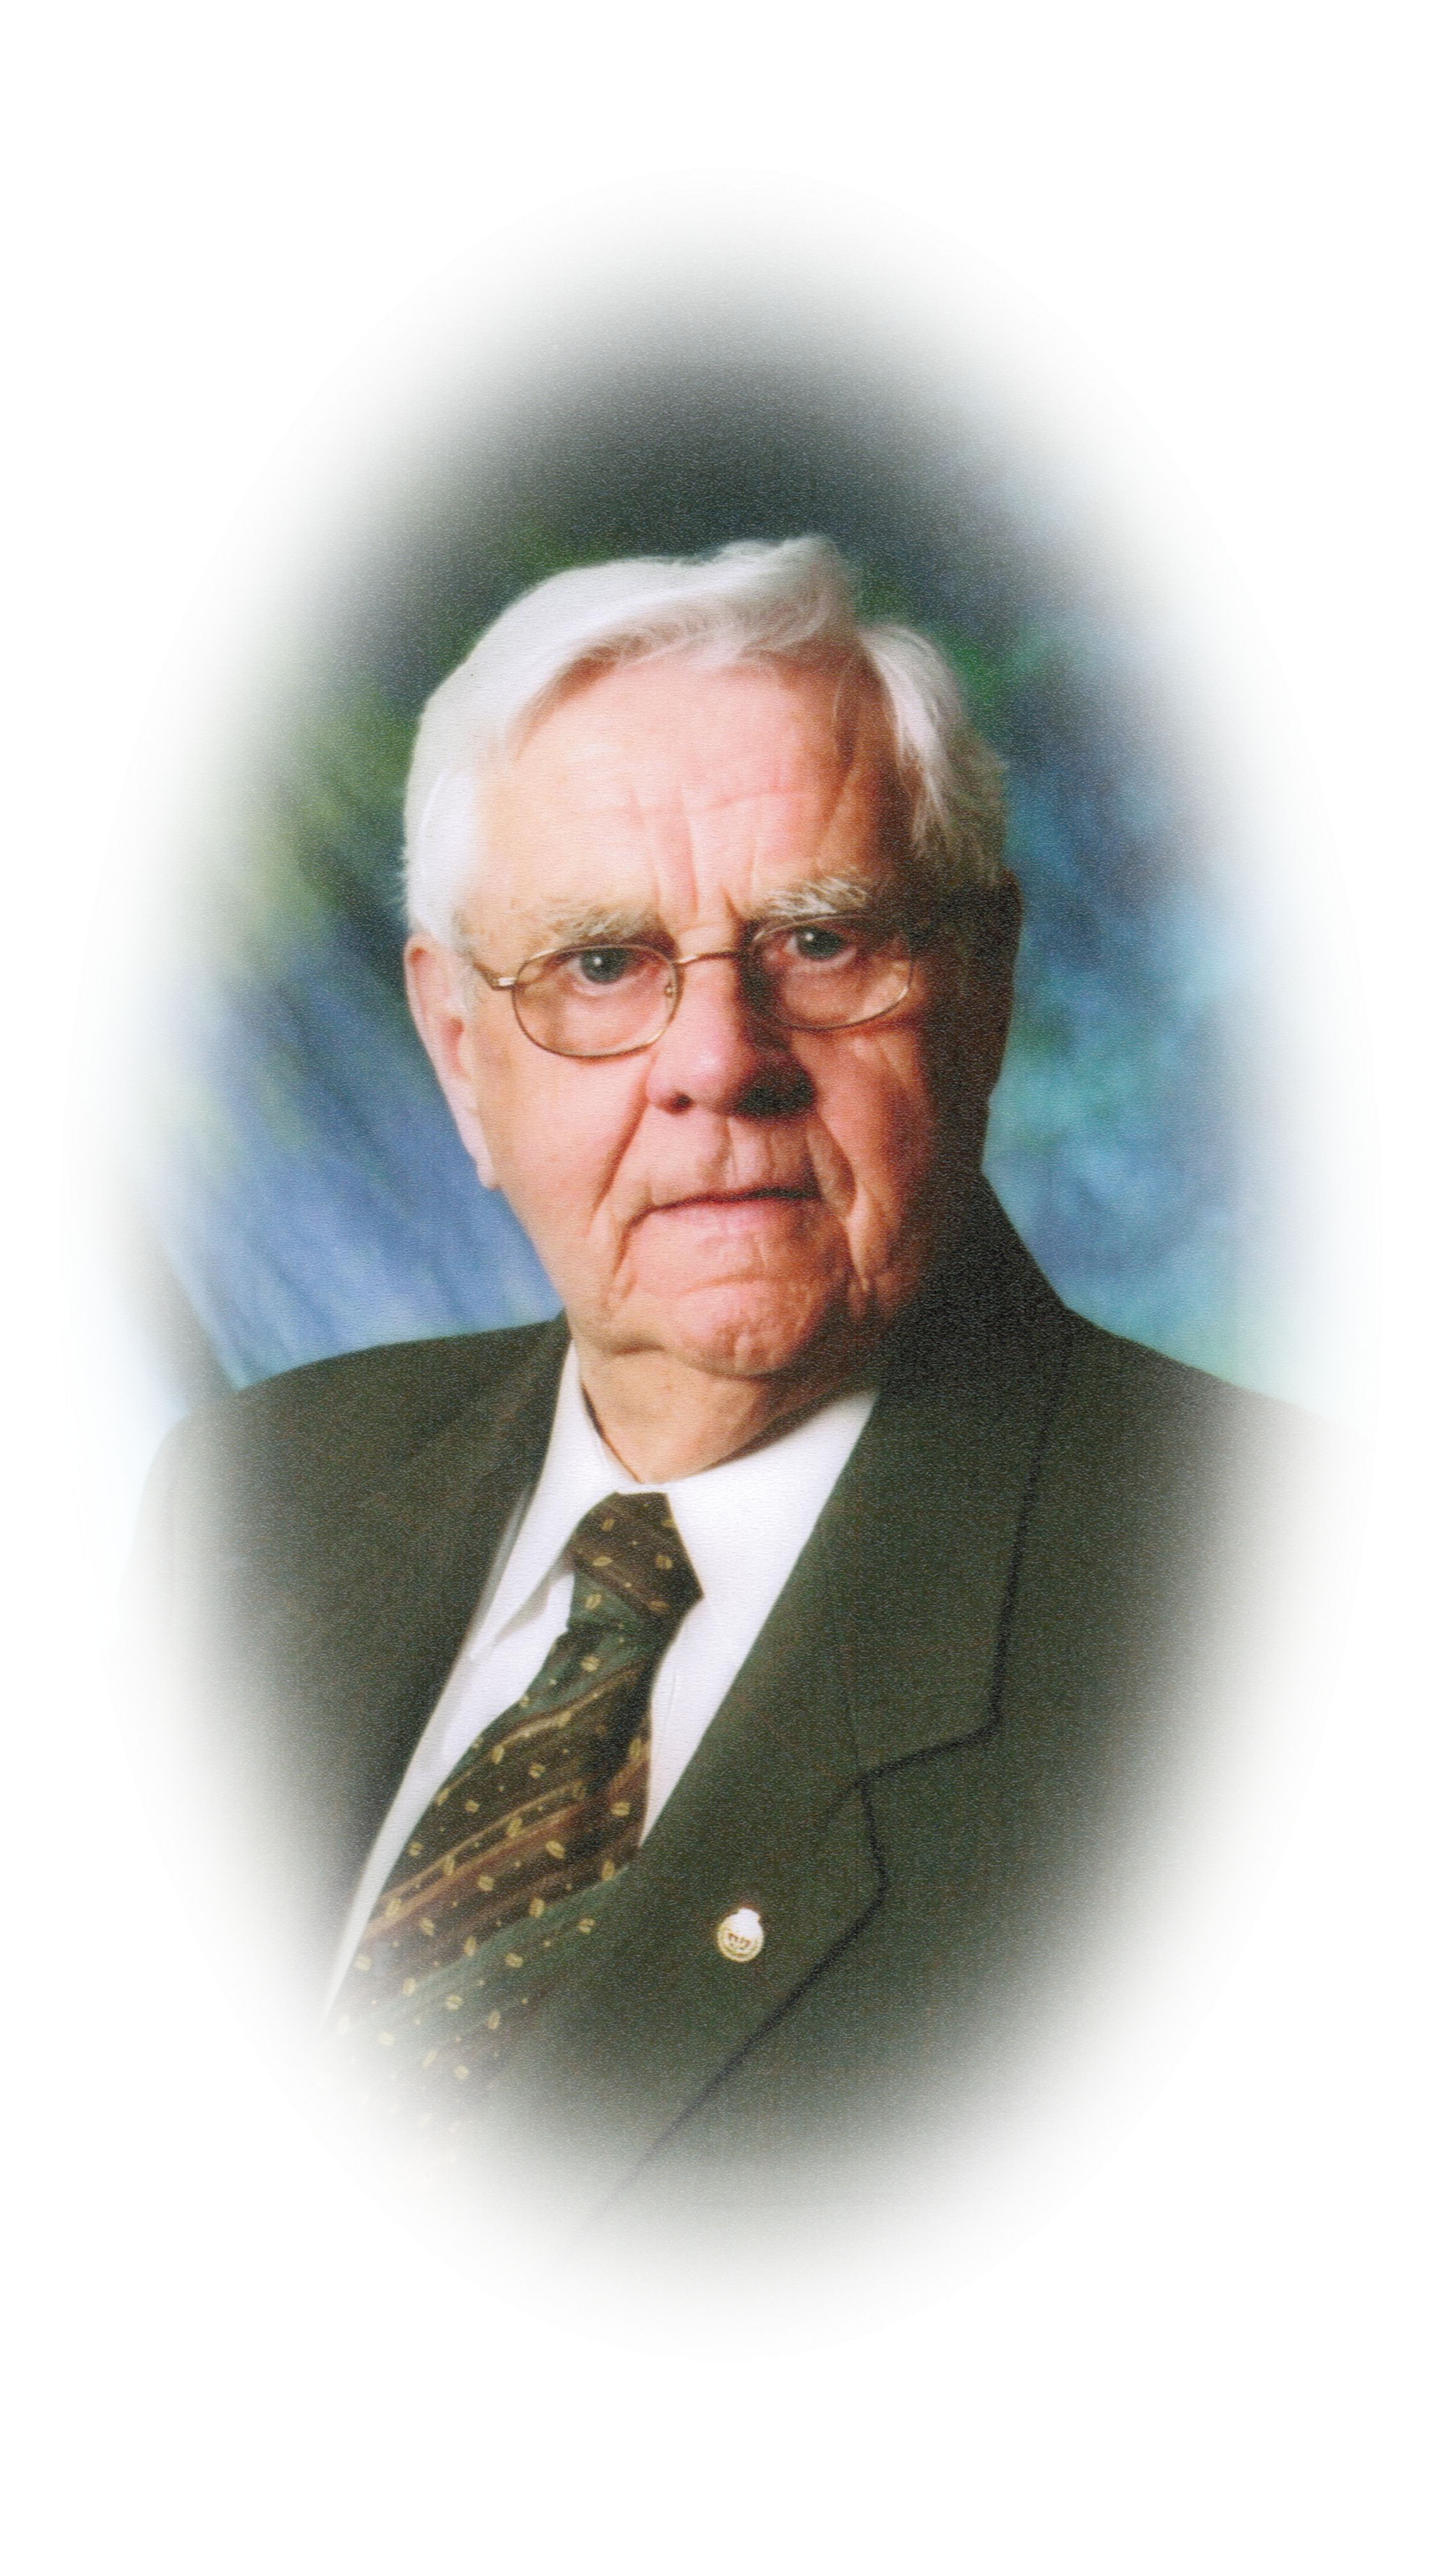 """Ben R By Darren Black: Captain E.R. """"Ben"""" Pike: Obituary And Death Notice On"""